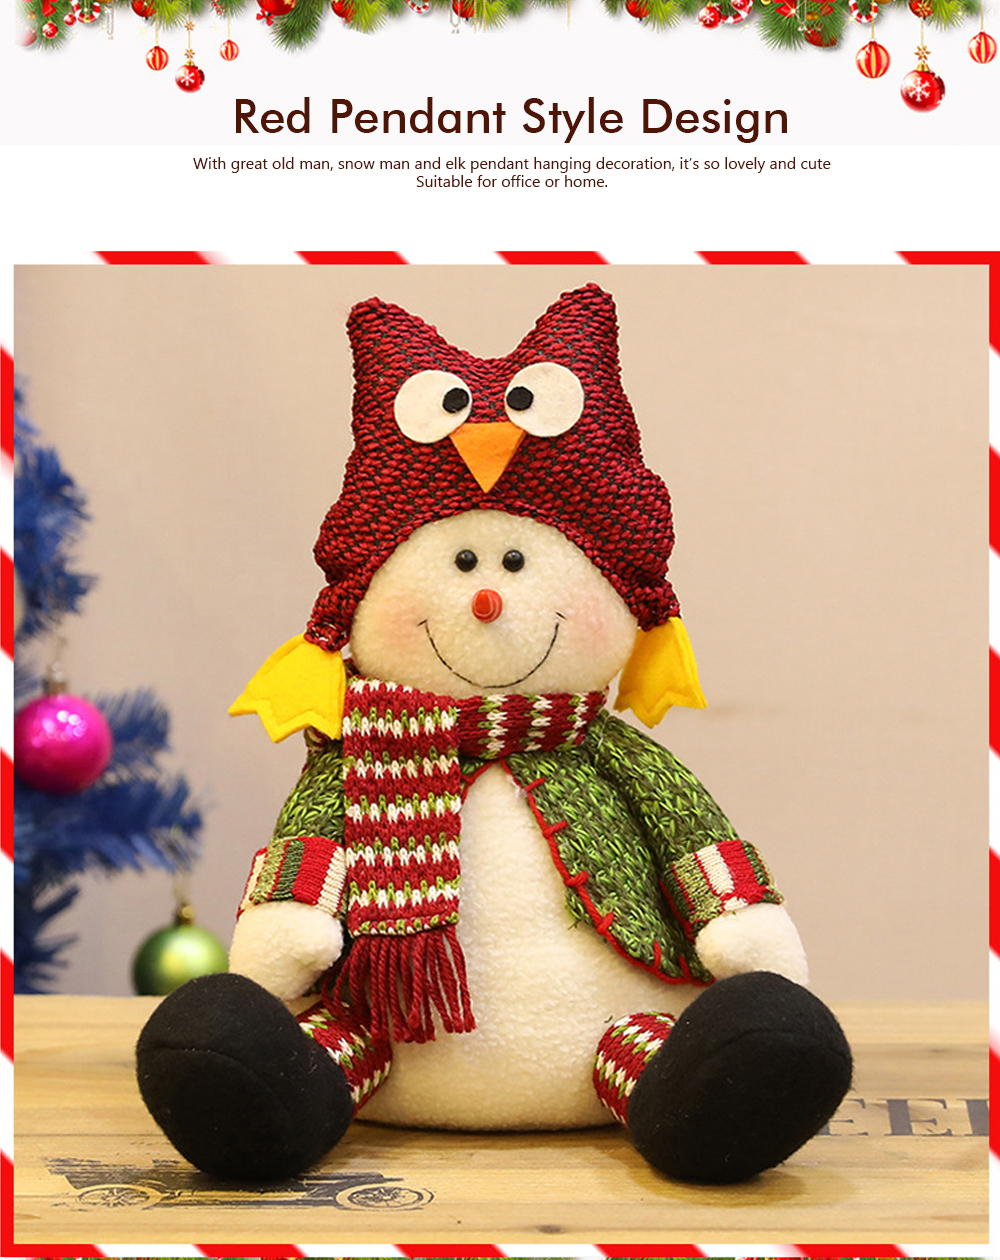 Christmas Decorations Plush Elk Sitting Posture Dolls for Children's Gifts and Mall Window Decoration Props 1